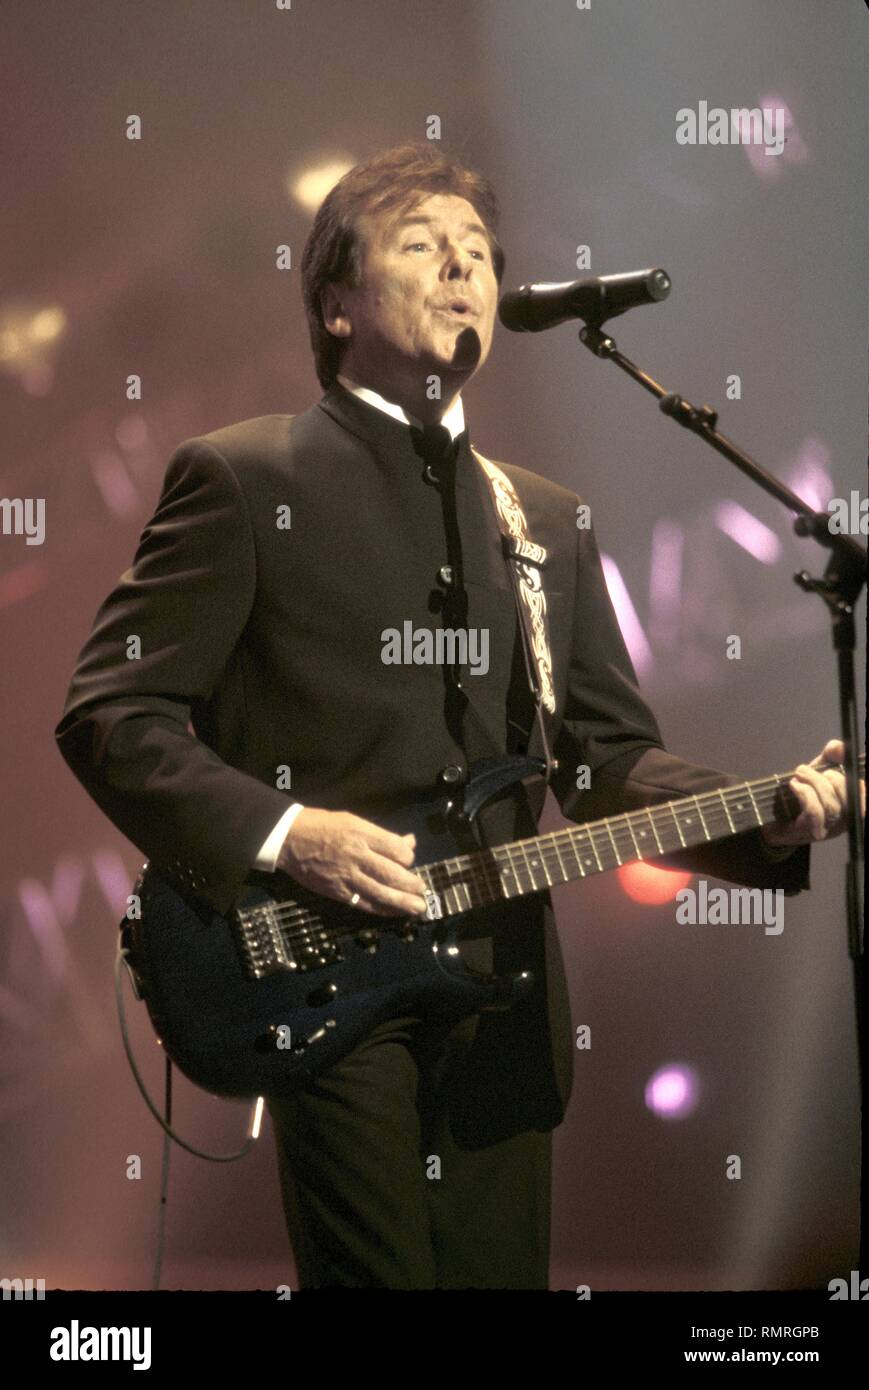 The singer and guitarist of the British rock band The Searchers is shown performing on stage during a 'live' concert appearance. - Stock Image